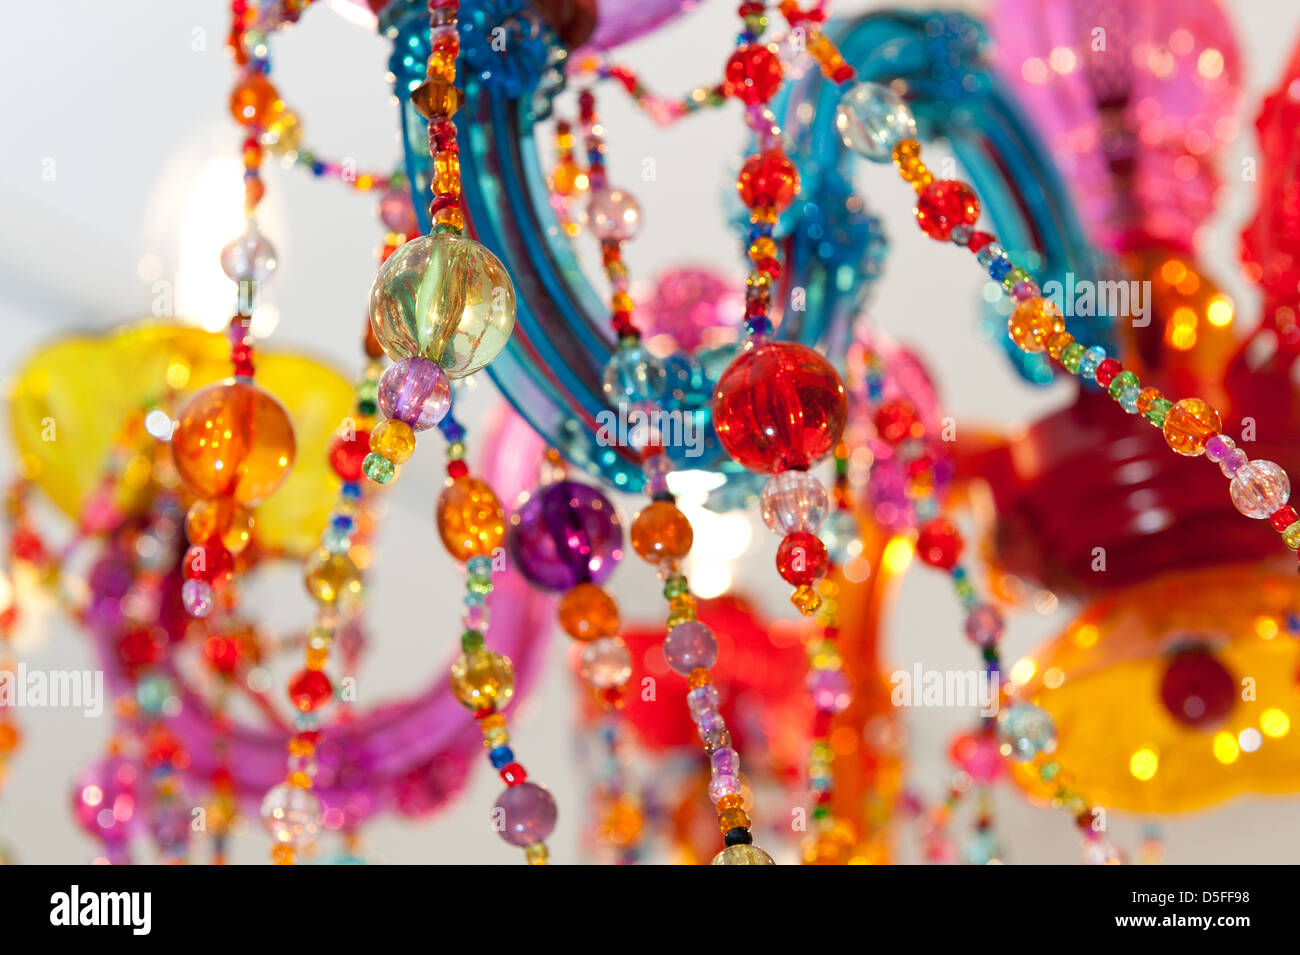 Colorful Chandelier Close Up Detail Made From Colored Glass Beads Bespoke Multicolored